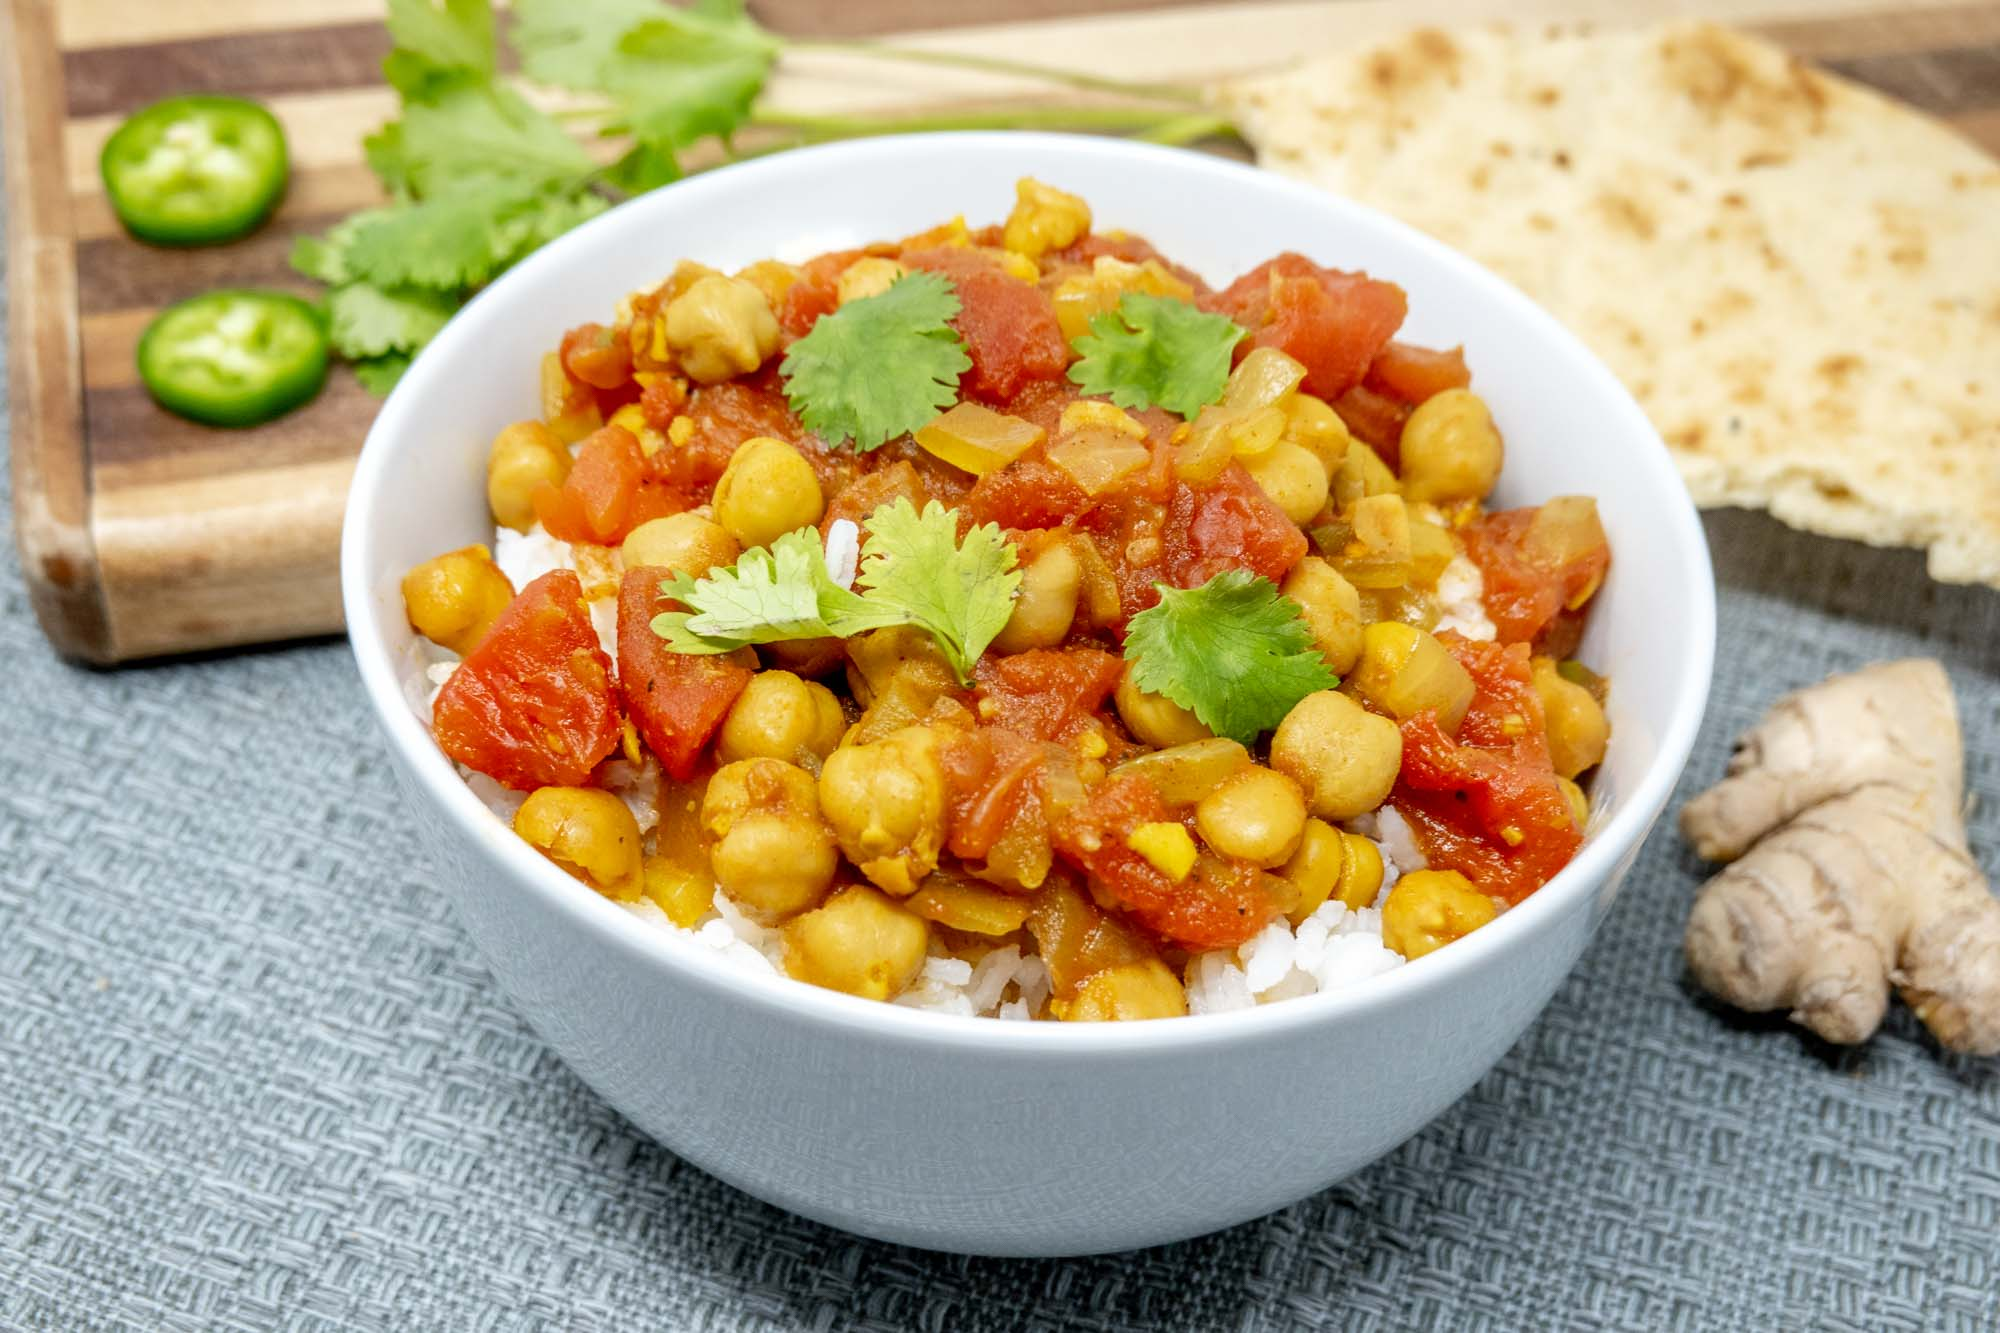 Bowl of rice topped with chickpea and tomato mixture beside ginger and jalapeno slices